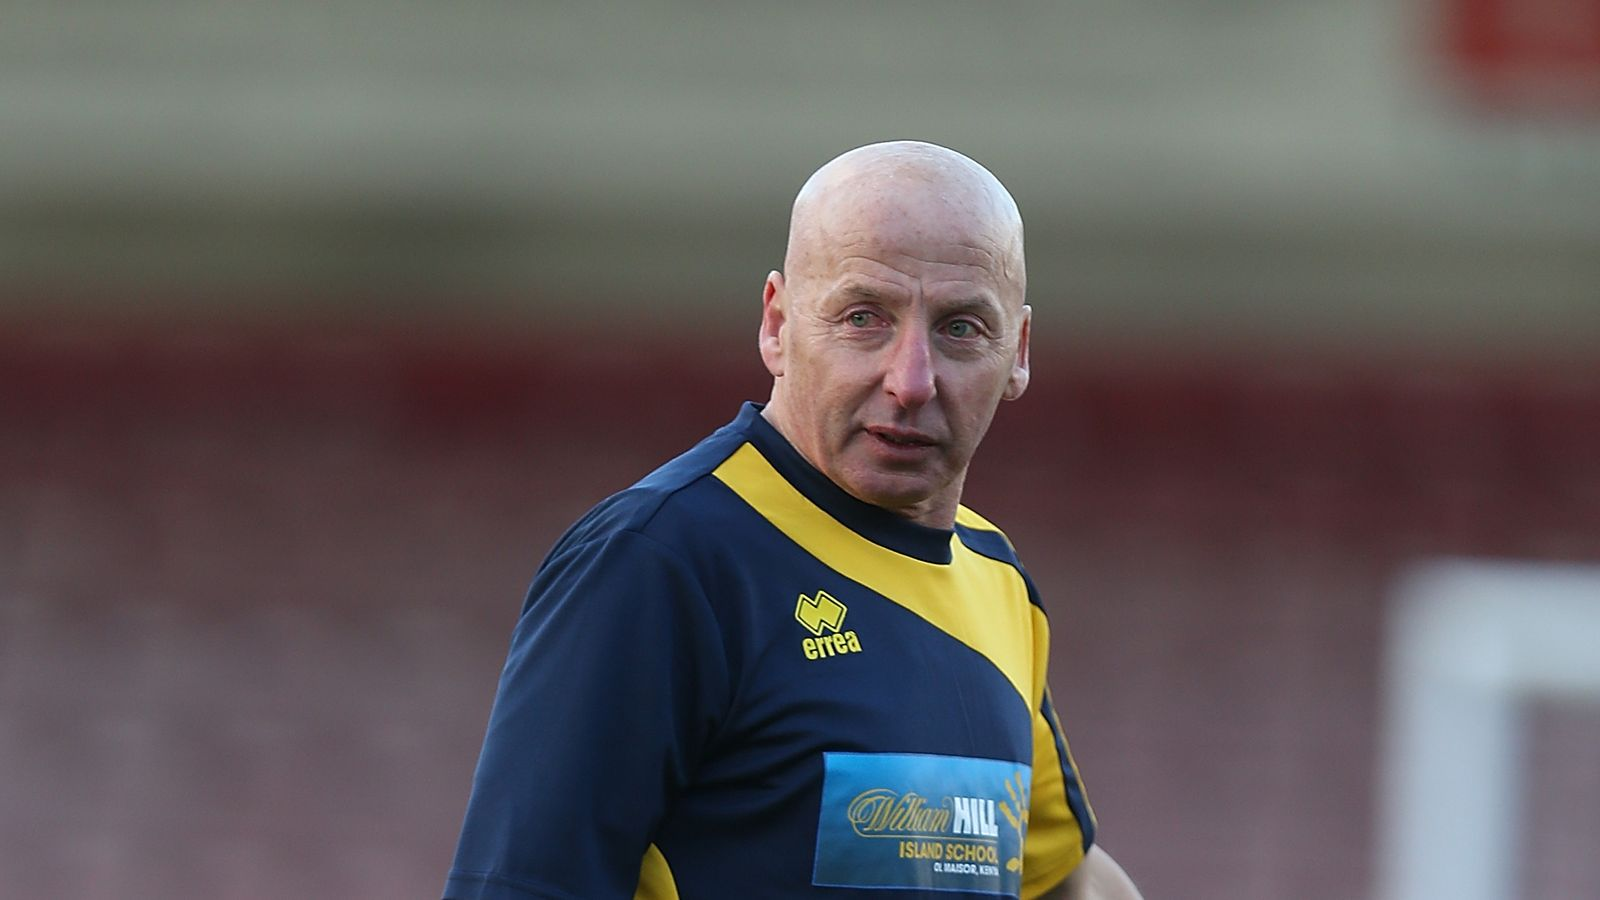 Mickey Thomas 'blown away' by support after announcing